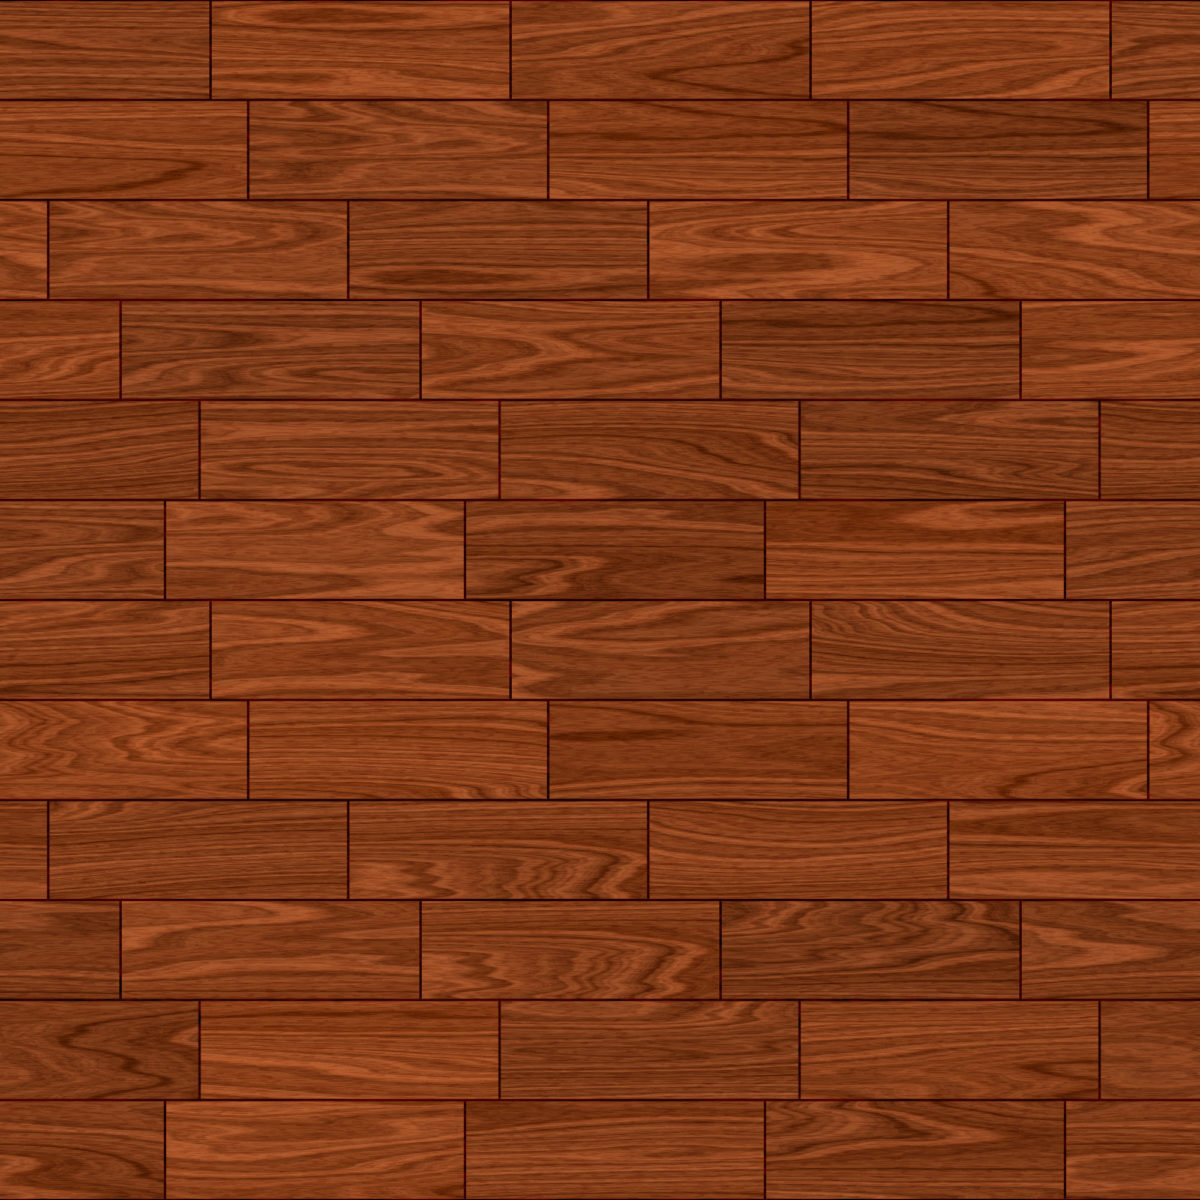 Free wood floor texture – rich wood patterns with wooden planks in this  seamless background seamless wood planks background